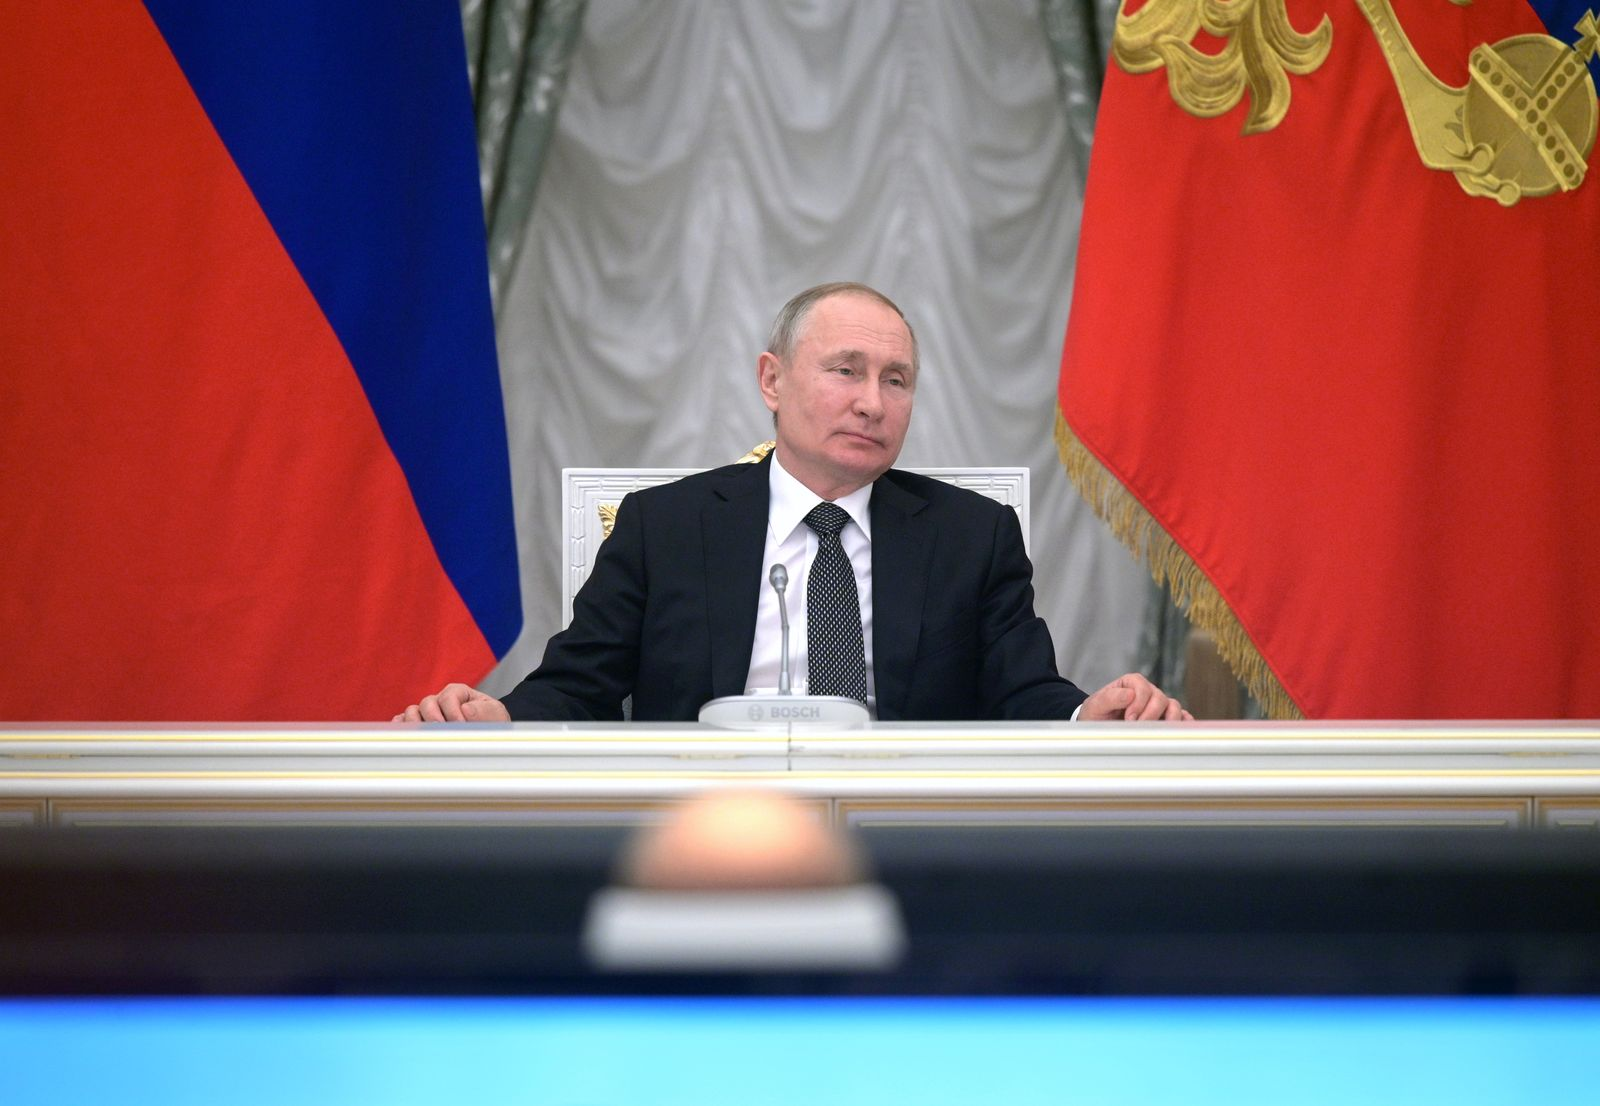 Russian President Vladimir Putin chairs a meeting with members of the working group on proposals for amendments to the Russian constitution, in Moscow